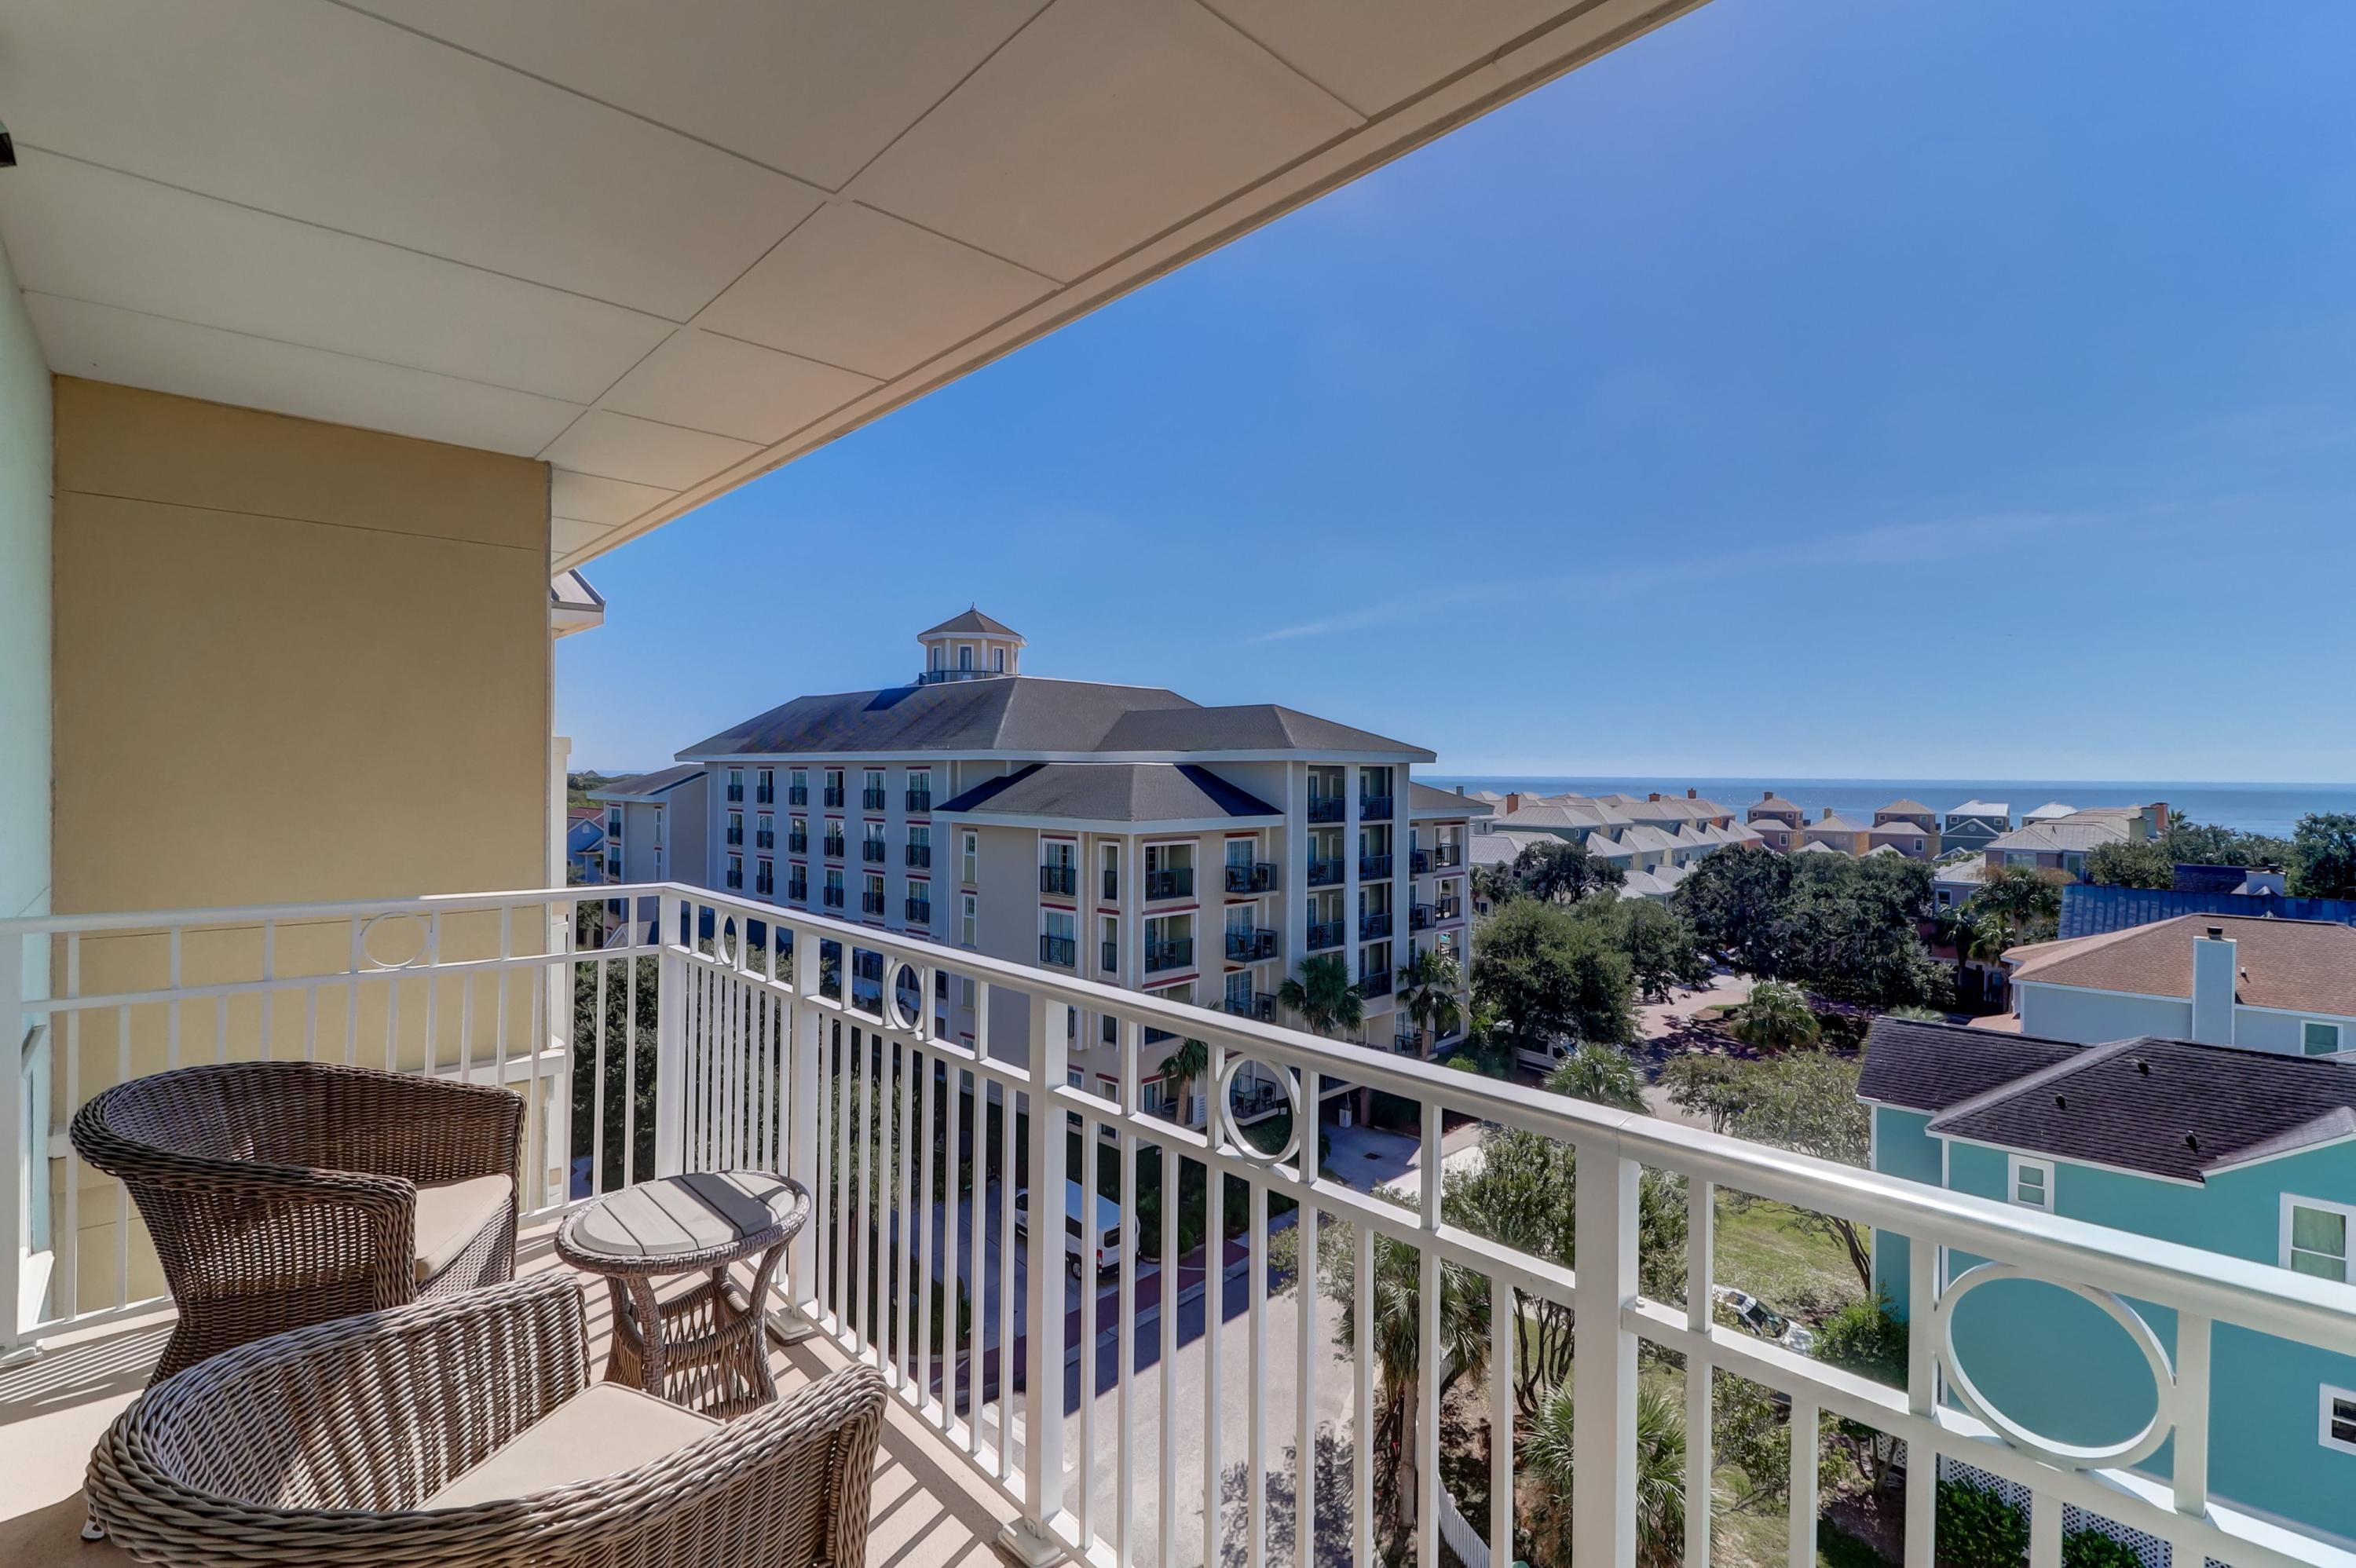 Wild Dunes Resort Homes For Sale - 5802 Palmetto, Isle of Palms, SC - 23